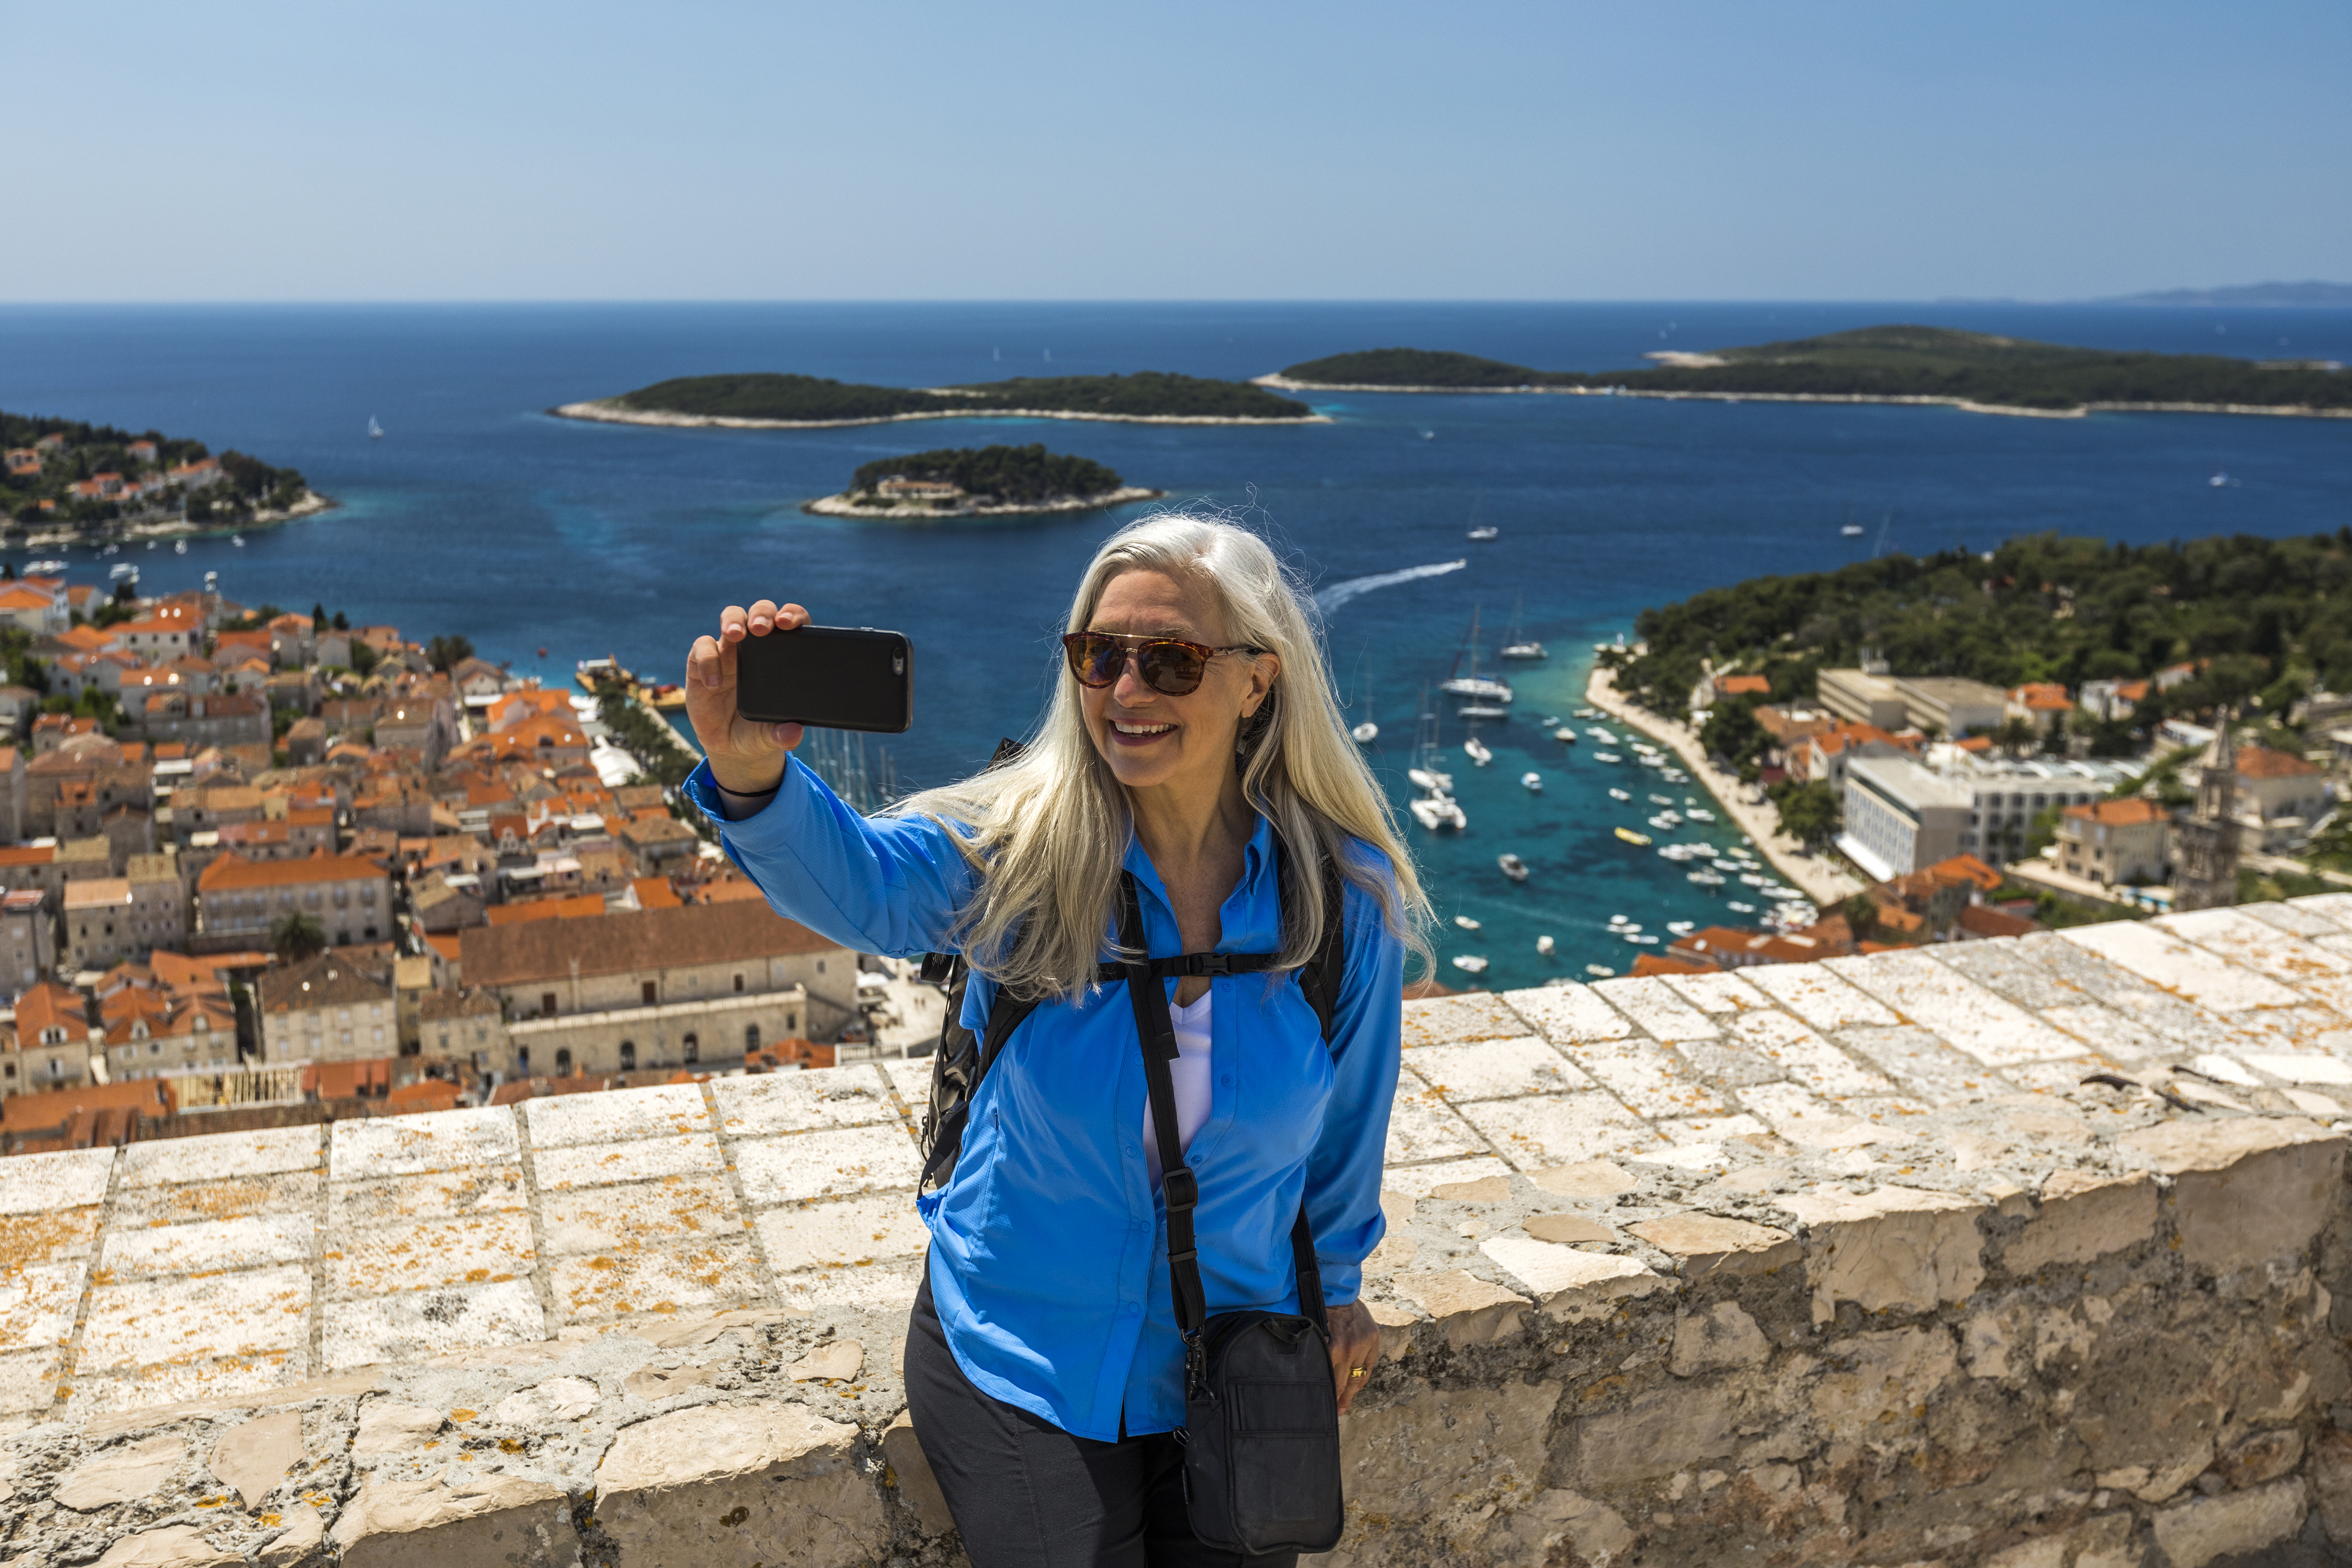 Women travel alone more than men. Here's why.